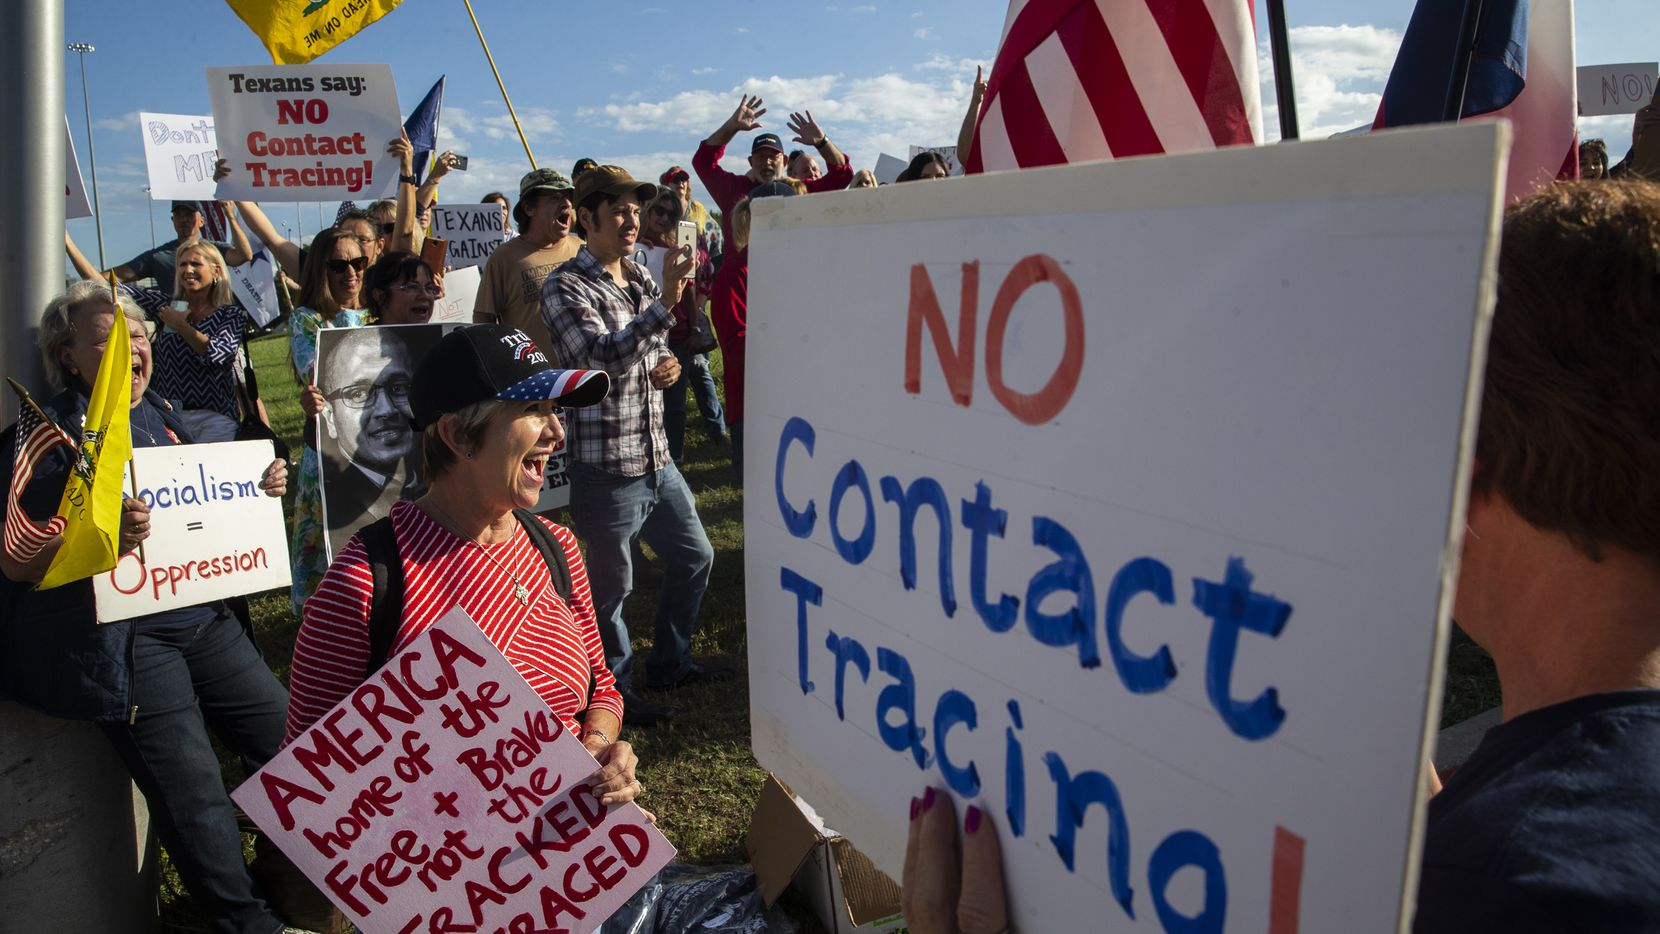 Renata Richardson (center) chants with other demonstrators during a protest organized by Texans Against Contact Tracing outside of the building that houses MTX Group, the company hired by Texas to do contact tracing, in Frisco, Texas, on Tuesday, May 26, 2020. Event organizer Grant Bynum said that the group is upset about the lack of legislative oversight in the $295 million contract granted to MTX to conduct contract tracing for the state. (Lynda M. Gonzalez/The Dallas Morning News)